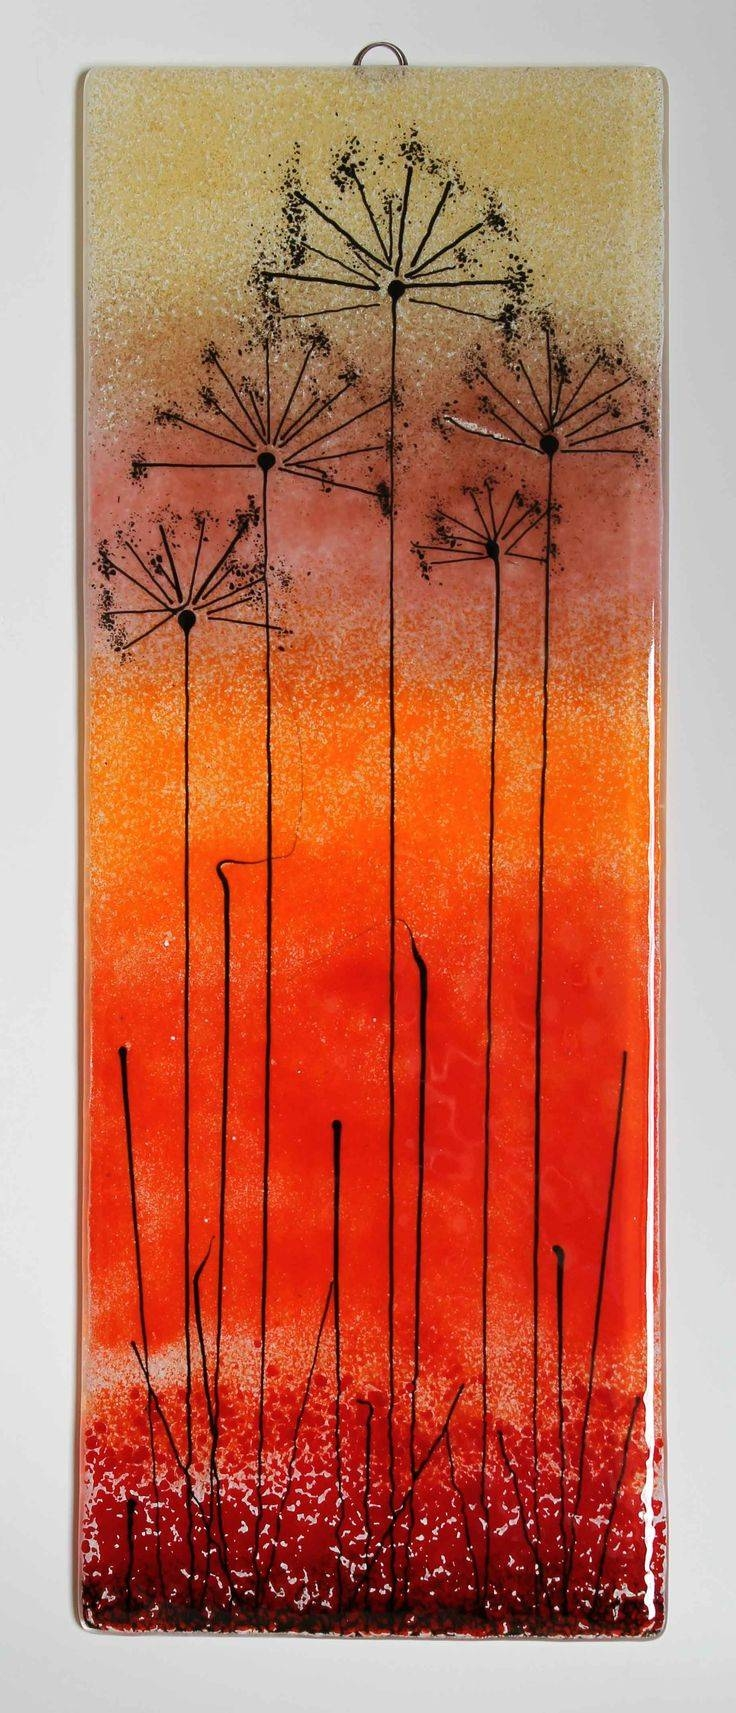 25+ Unique Fused Glass Art Ideas On Pinterest | Glass Fusing Inside Most Current Fused Glass Wall Art Hanging (View 6 of 25)